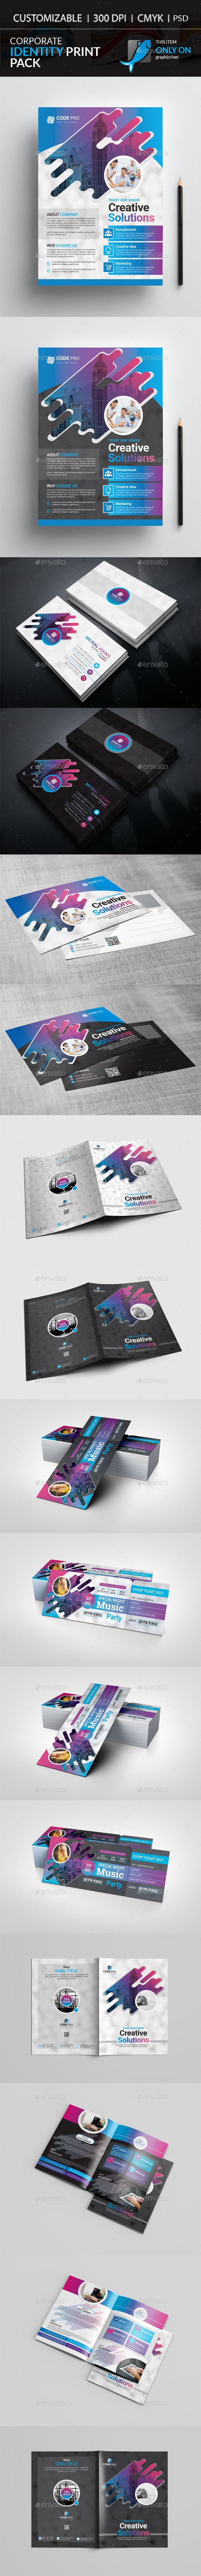 Corporate Identity Pack Print Pack - Brochures Print Templates